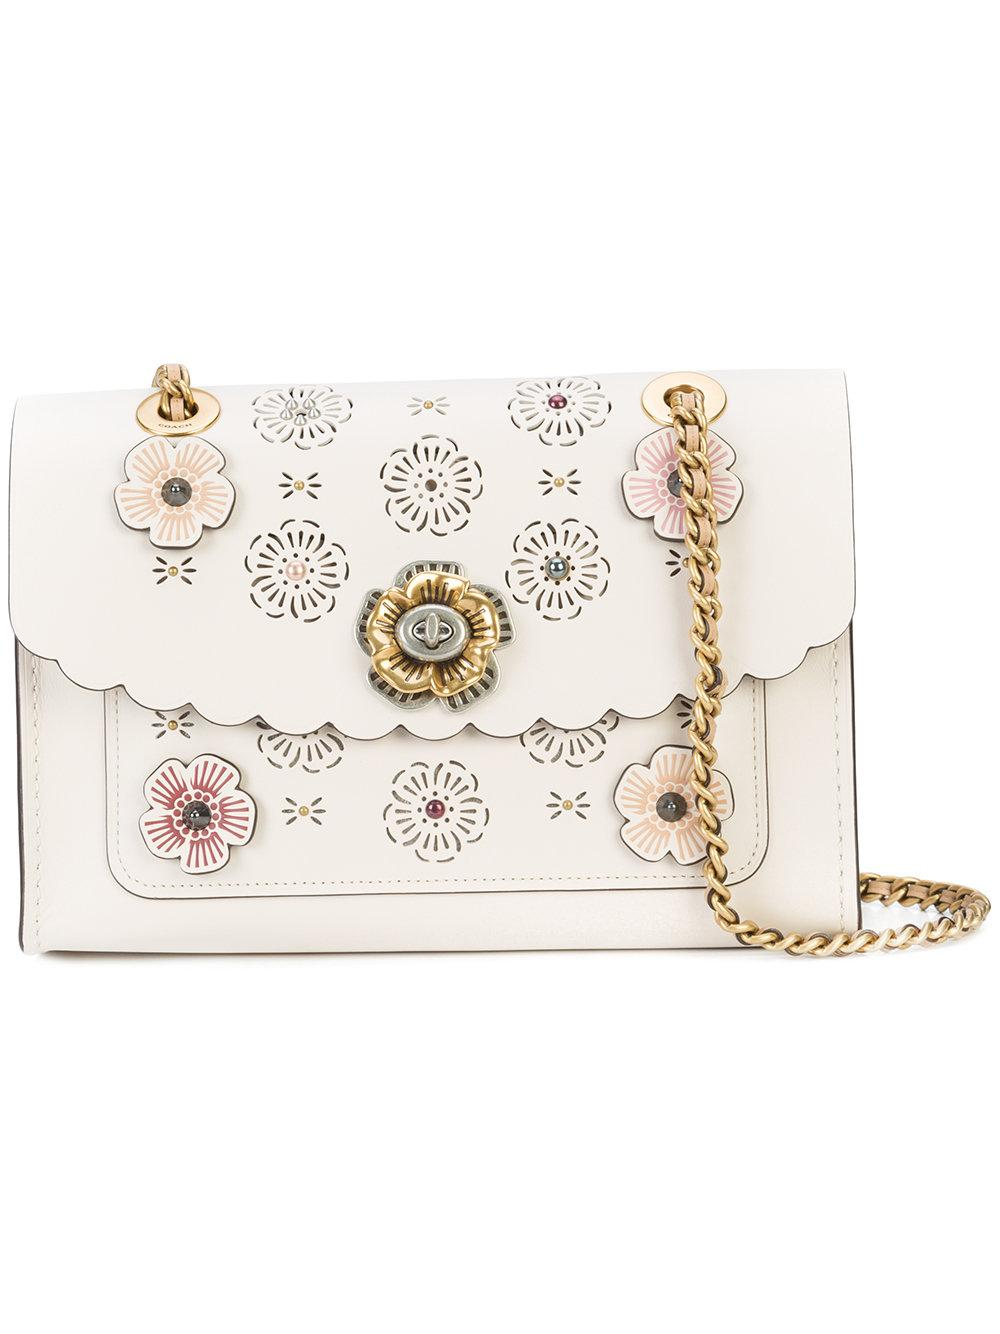 Coach Tea Rose Parker Shoulder Bag - White